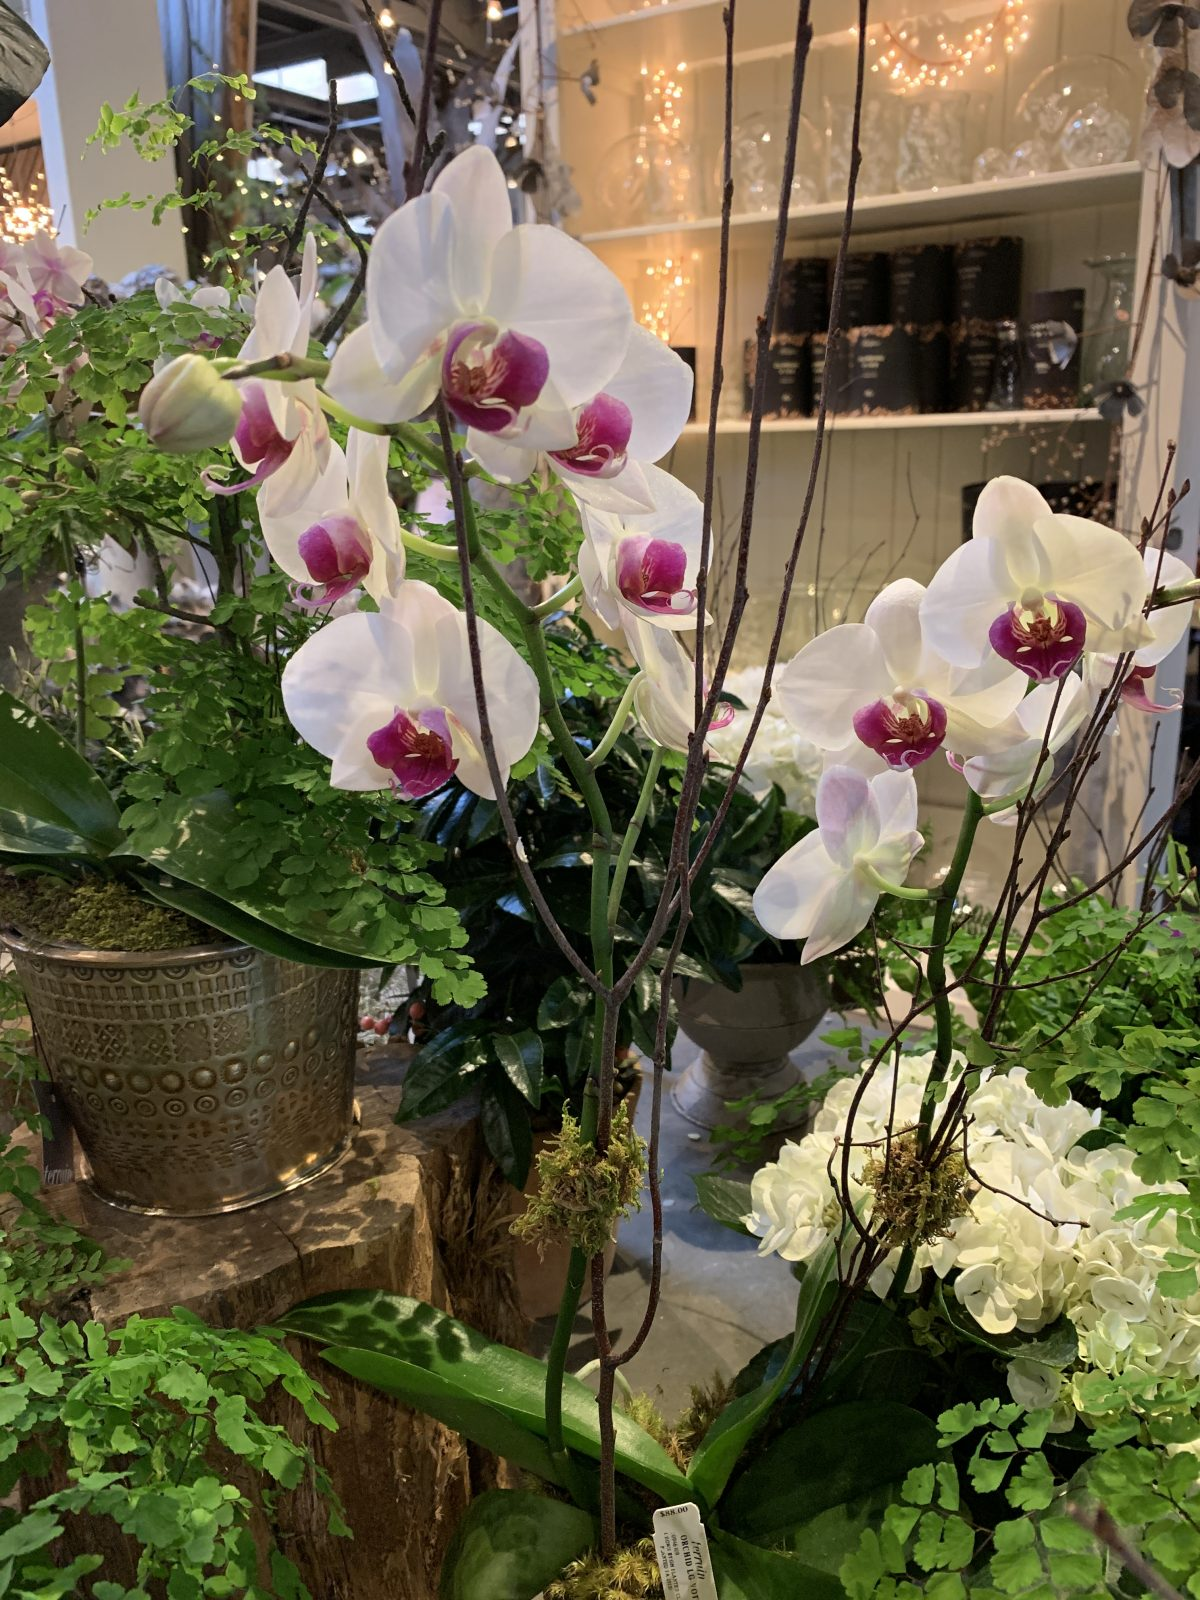 The Orchid Show 2019: Singapore Orchids #NYBG #NewYorkBotanticalGarden #TheOrchidShow #TheOrchidShowSingapore #Spring #SpringFlowers #Orchids #NYC